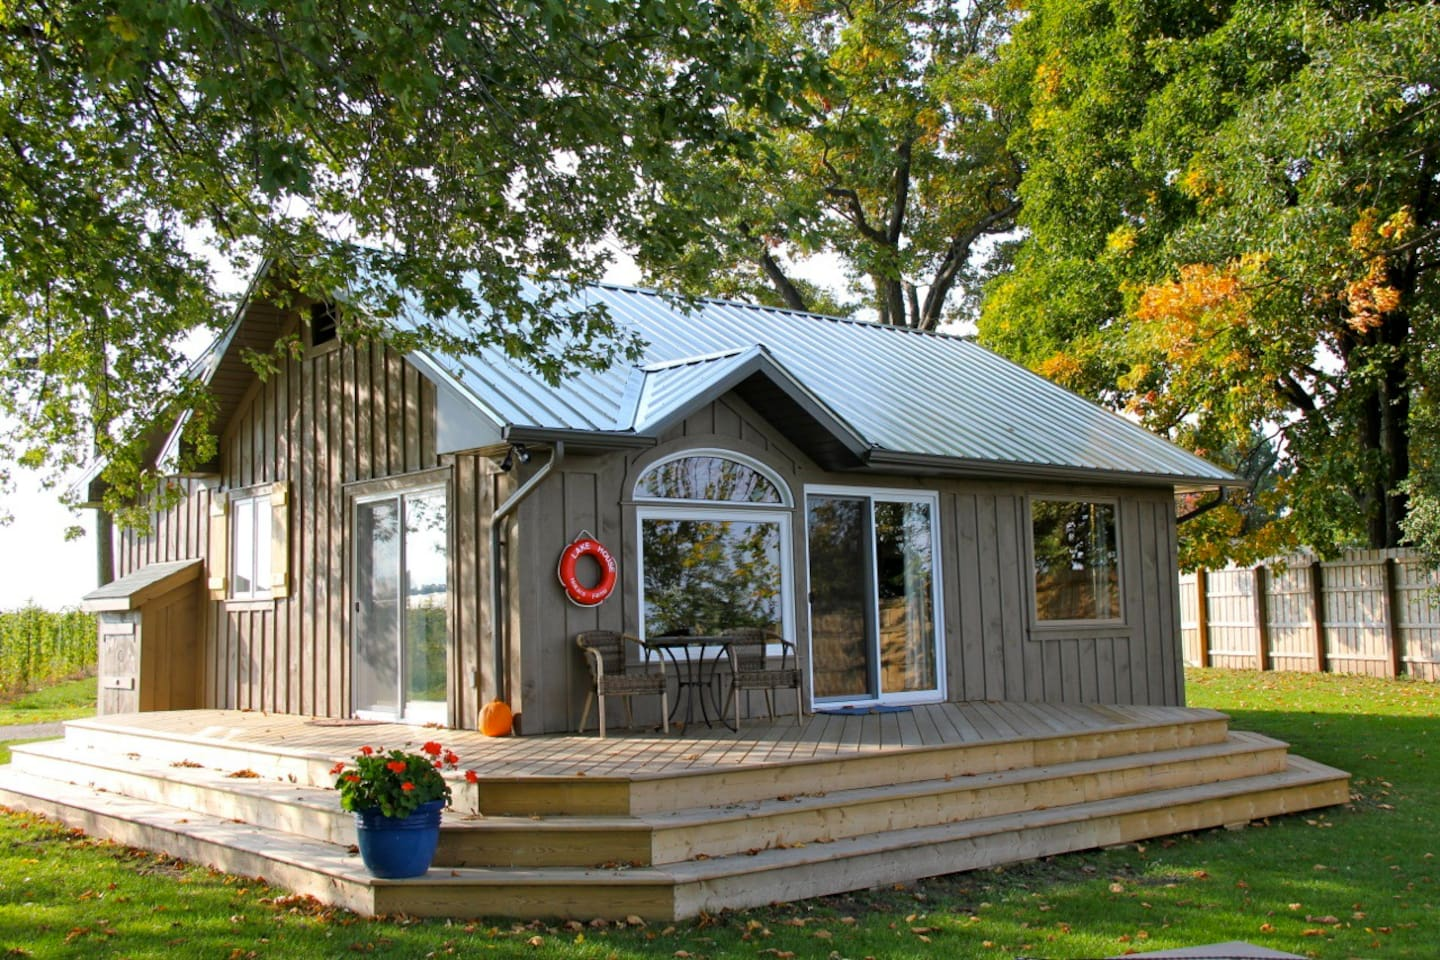 This is the front of the 3 bedroom Lake House cottage that faces Lake Ontario